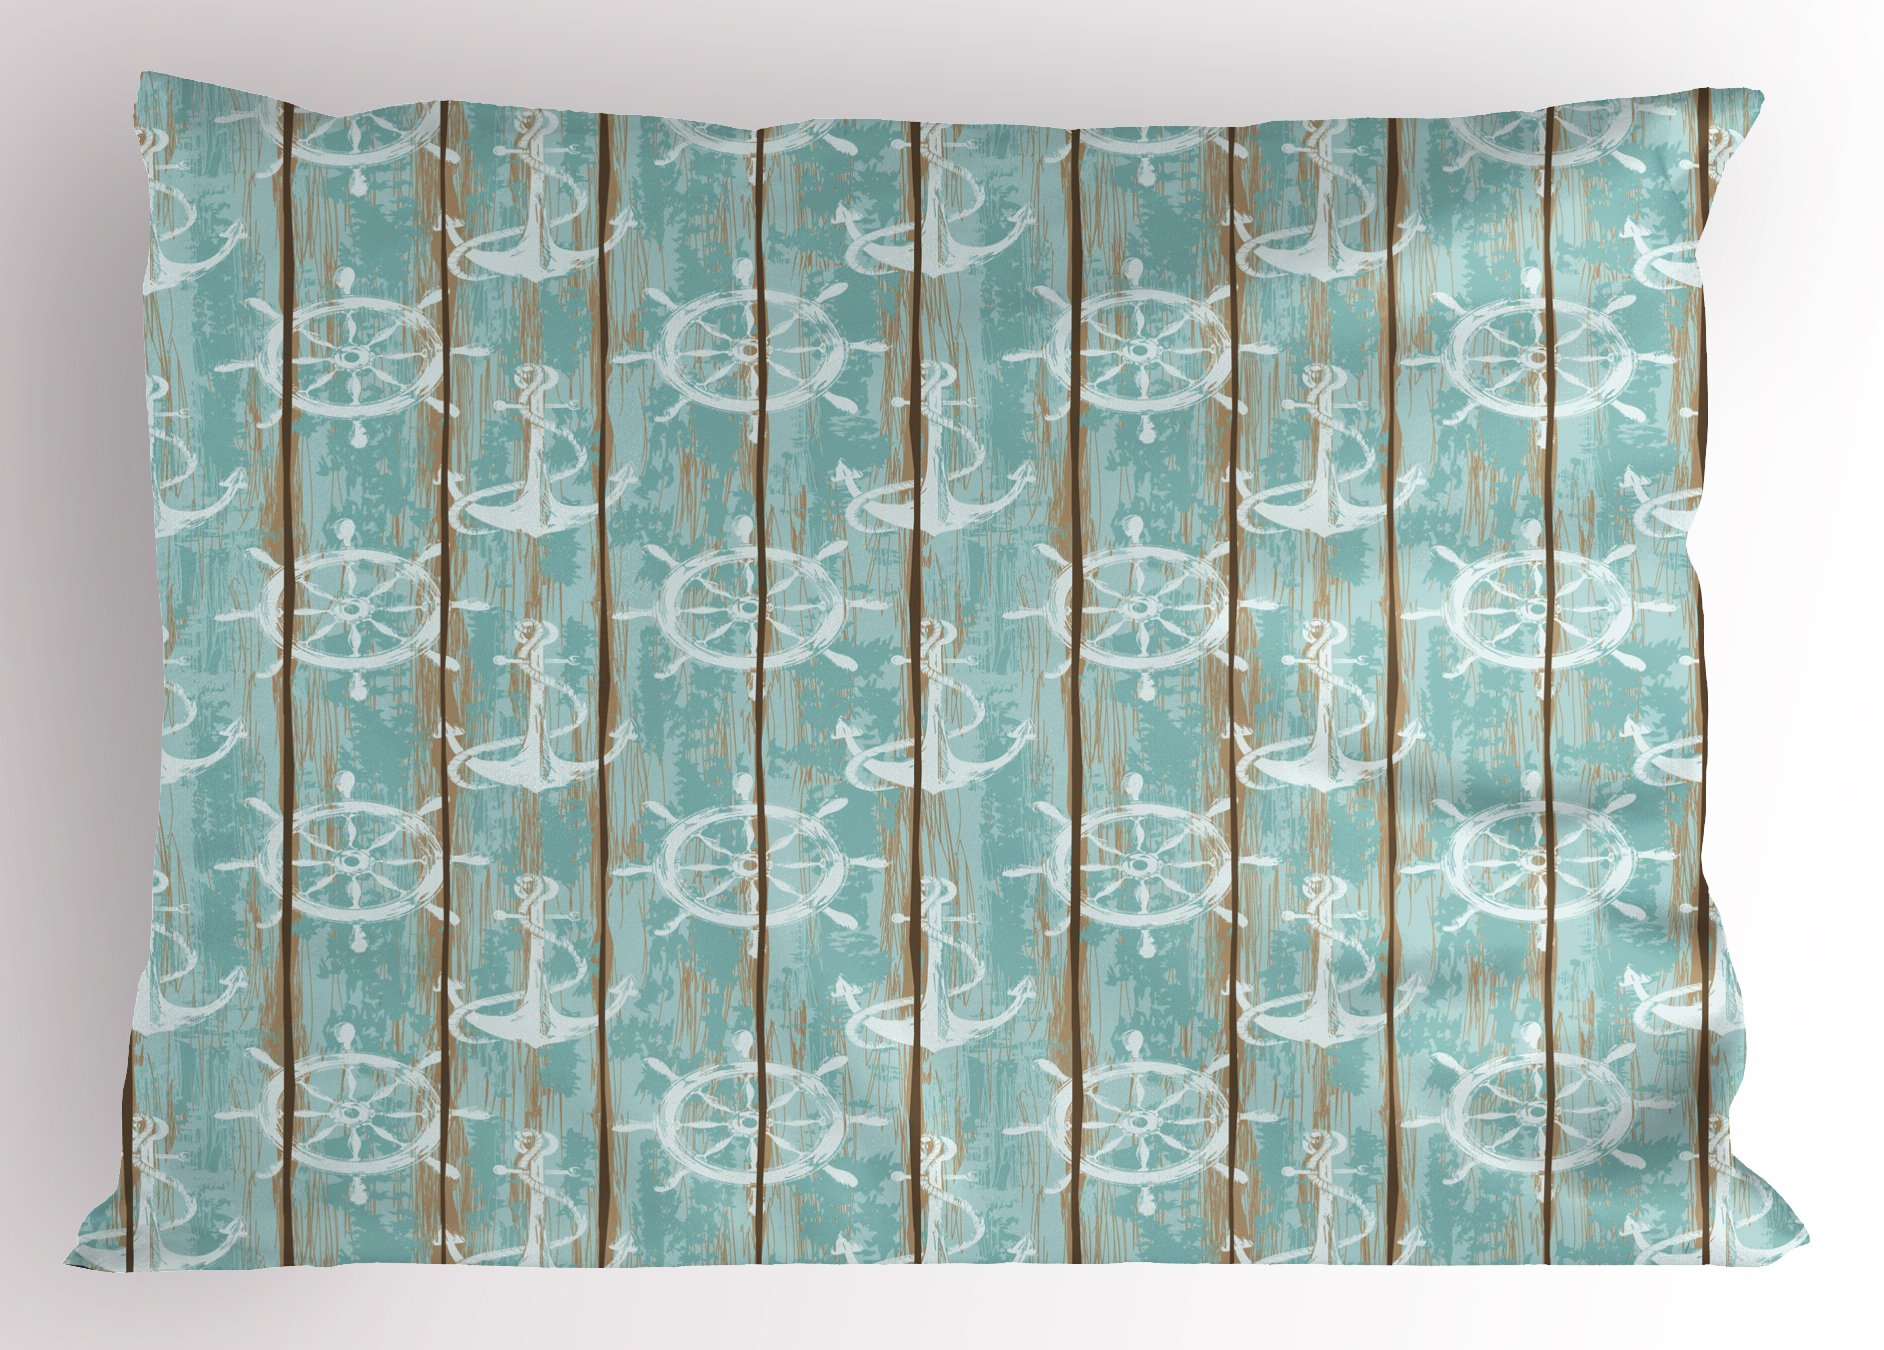 Ambesonne Nautical Pillow Sham, Marine Elements Drawn on Old Wood Surface Helm Anchor Ornamental Print, Decorative Standard Size Printed Pillowcase, 26 X 20 inches, Turquoise Cocoa White